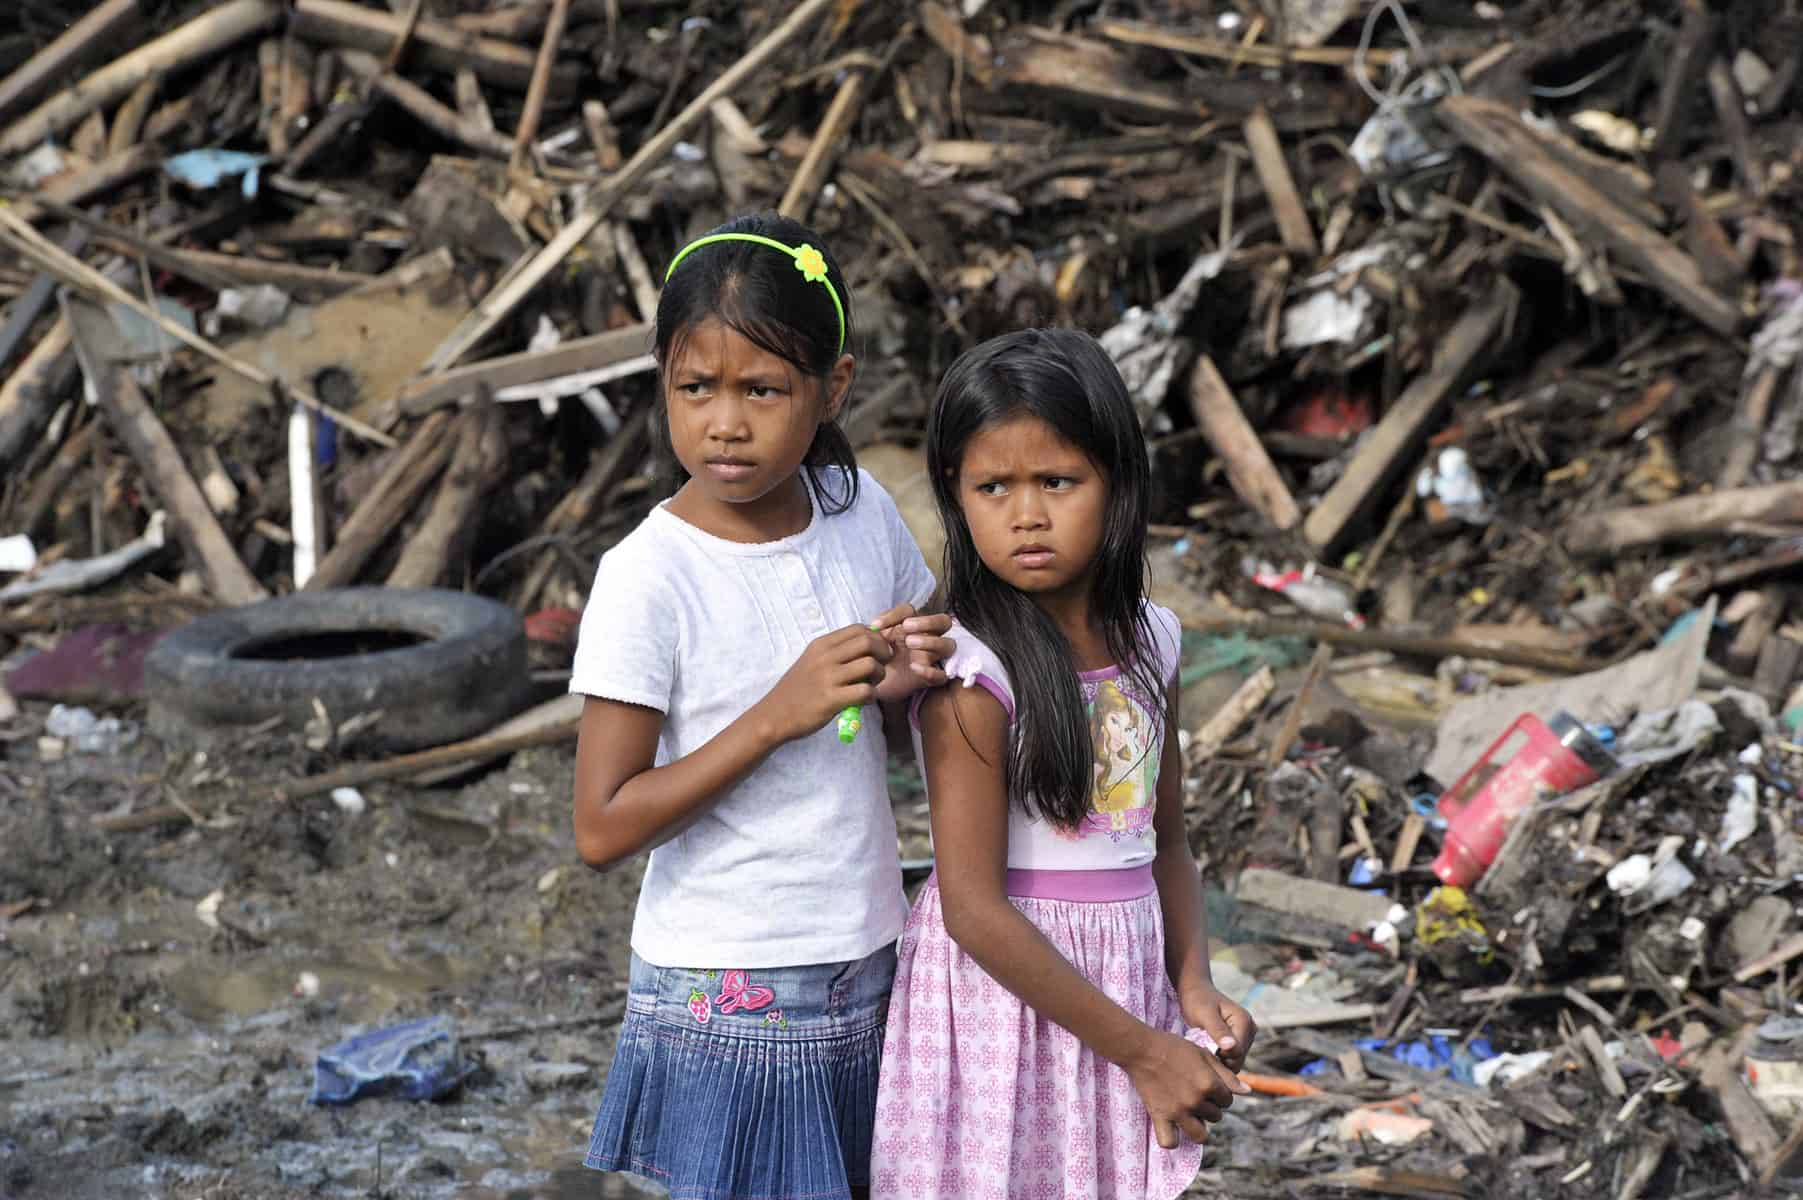 Survivors of Super Typhoon Yolanda in Tacloban City, Philippines, 2013. (cc) UN Photo/Evan Schneider